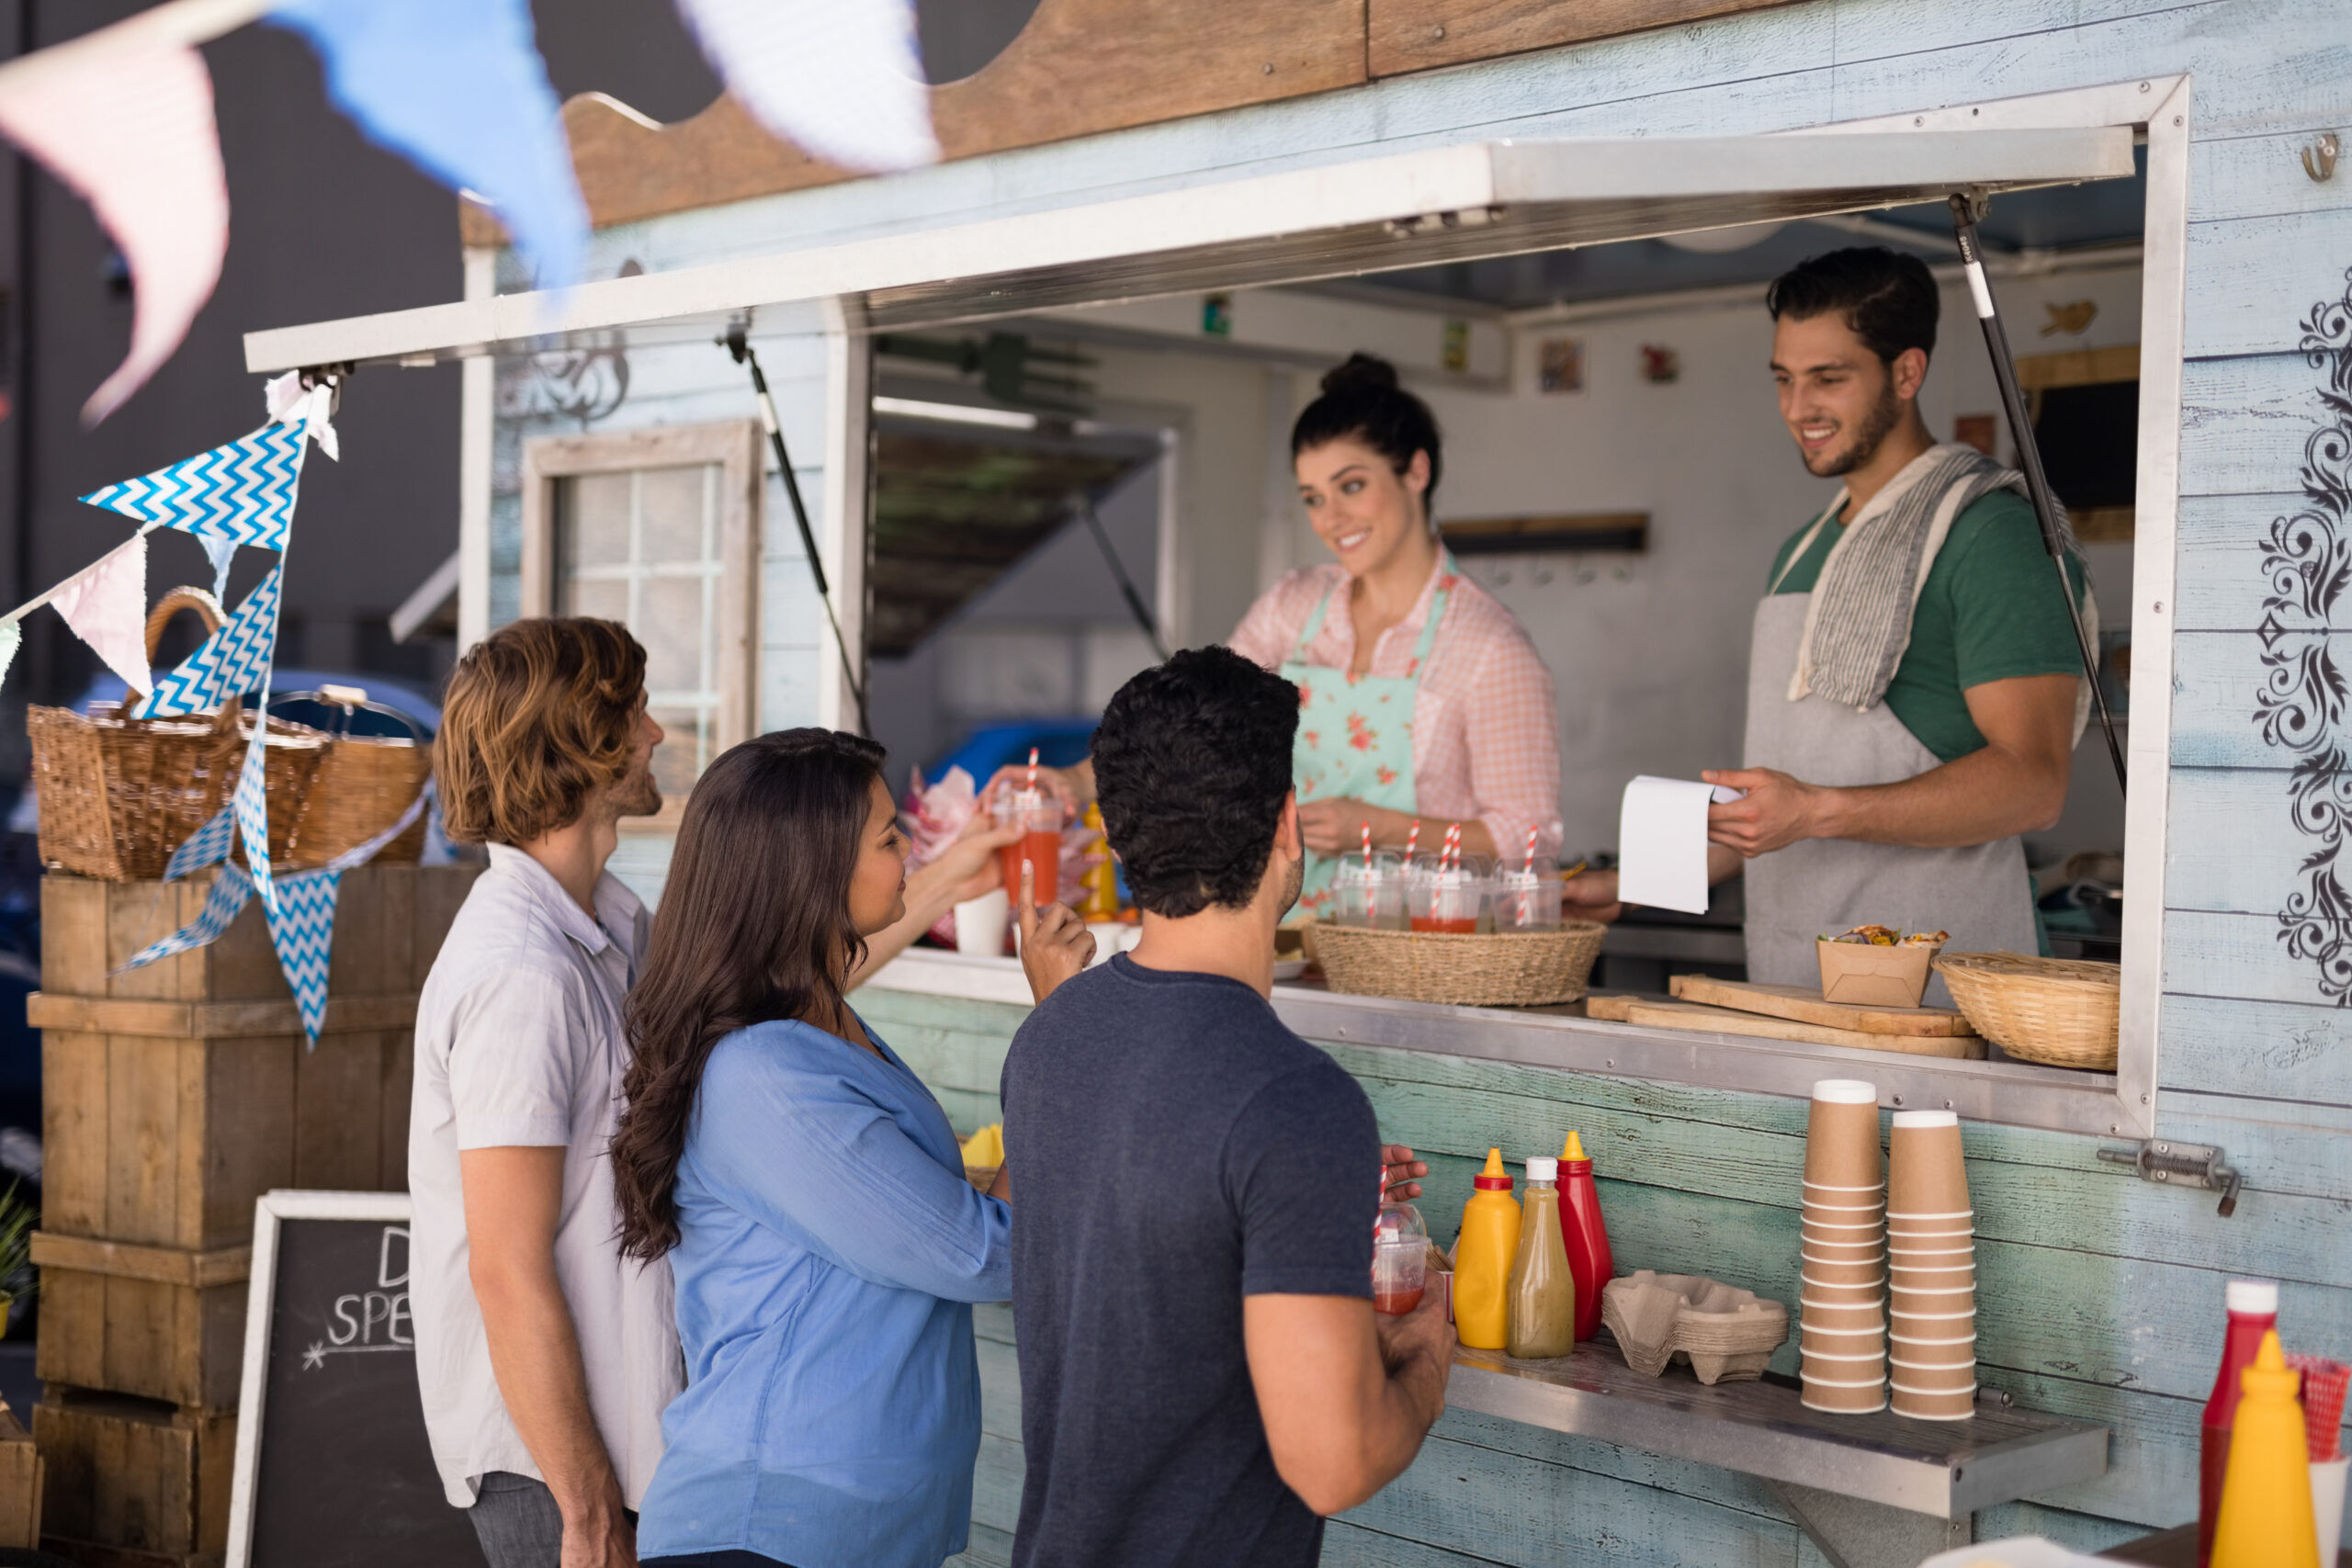 Sustainable business ideas for food trucks